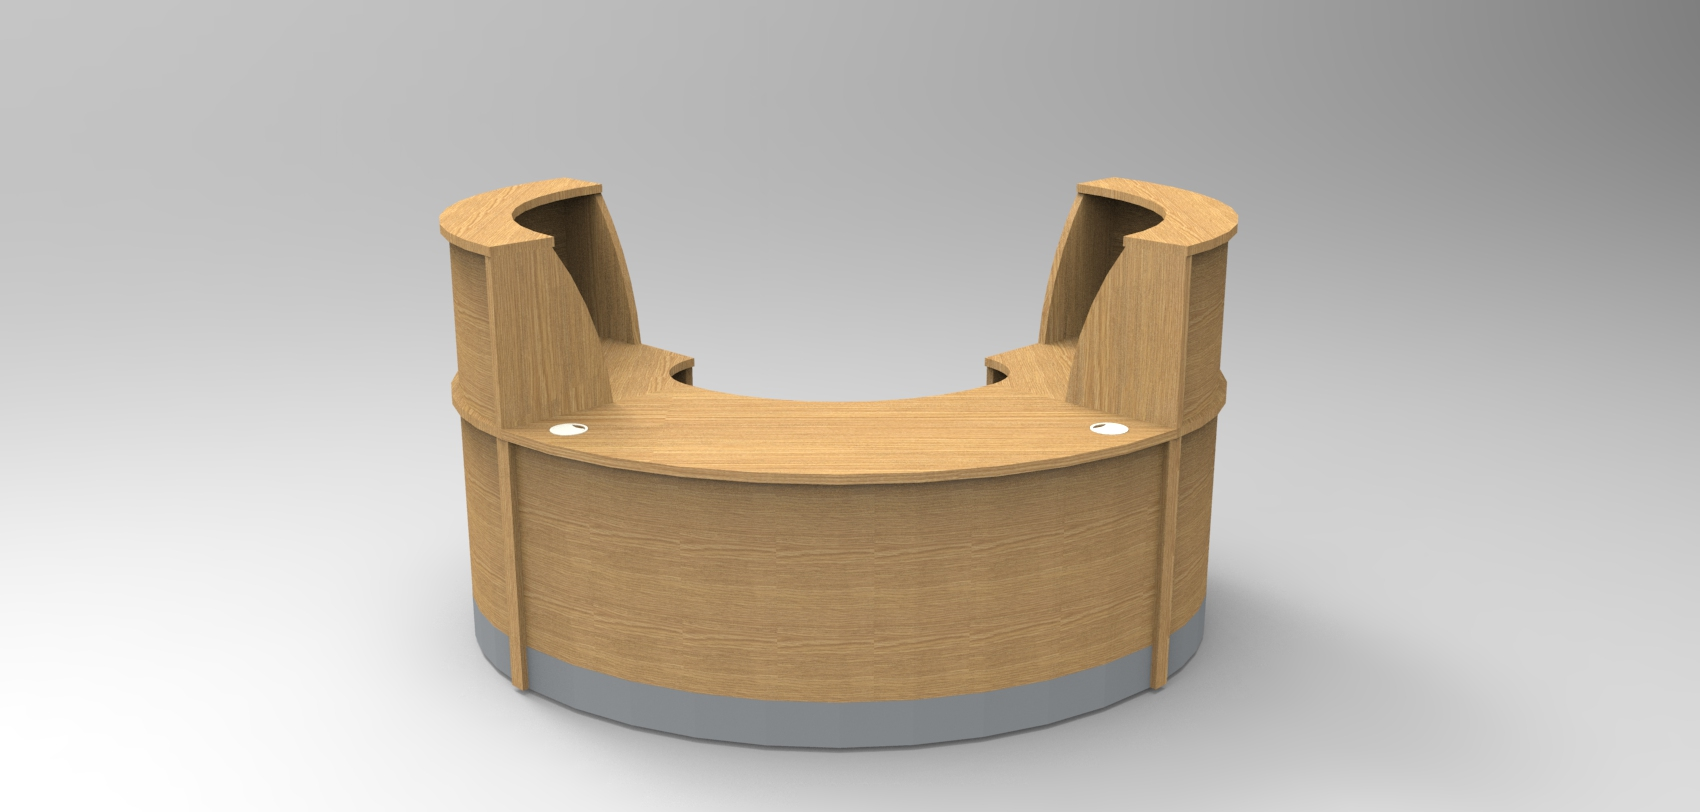 Image 26F/SP - Flex Small Oak Polo reception desk  (2166mm wide x 1483mm deep)